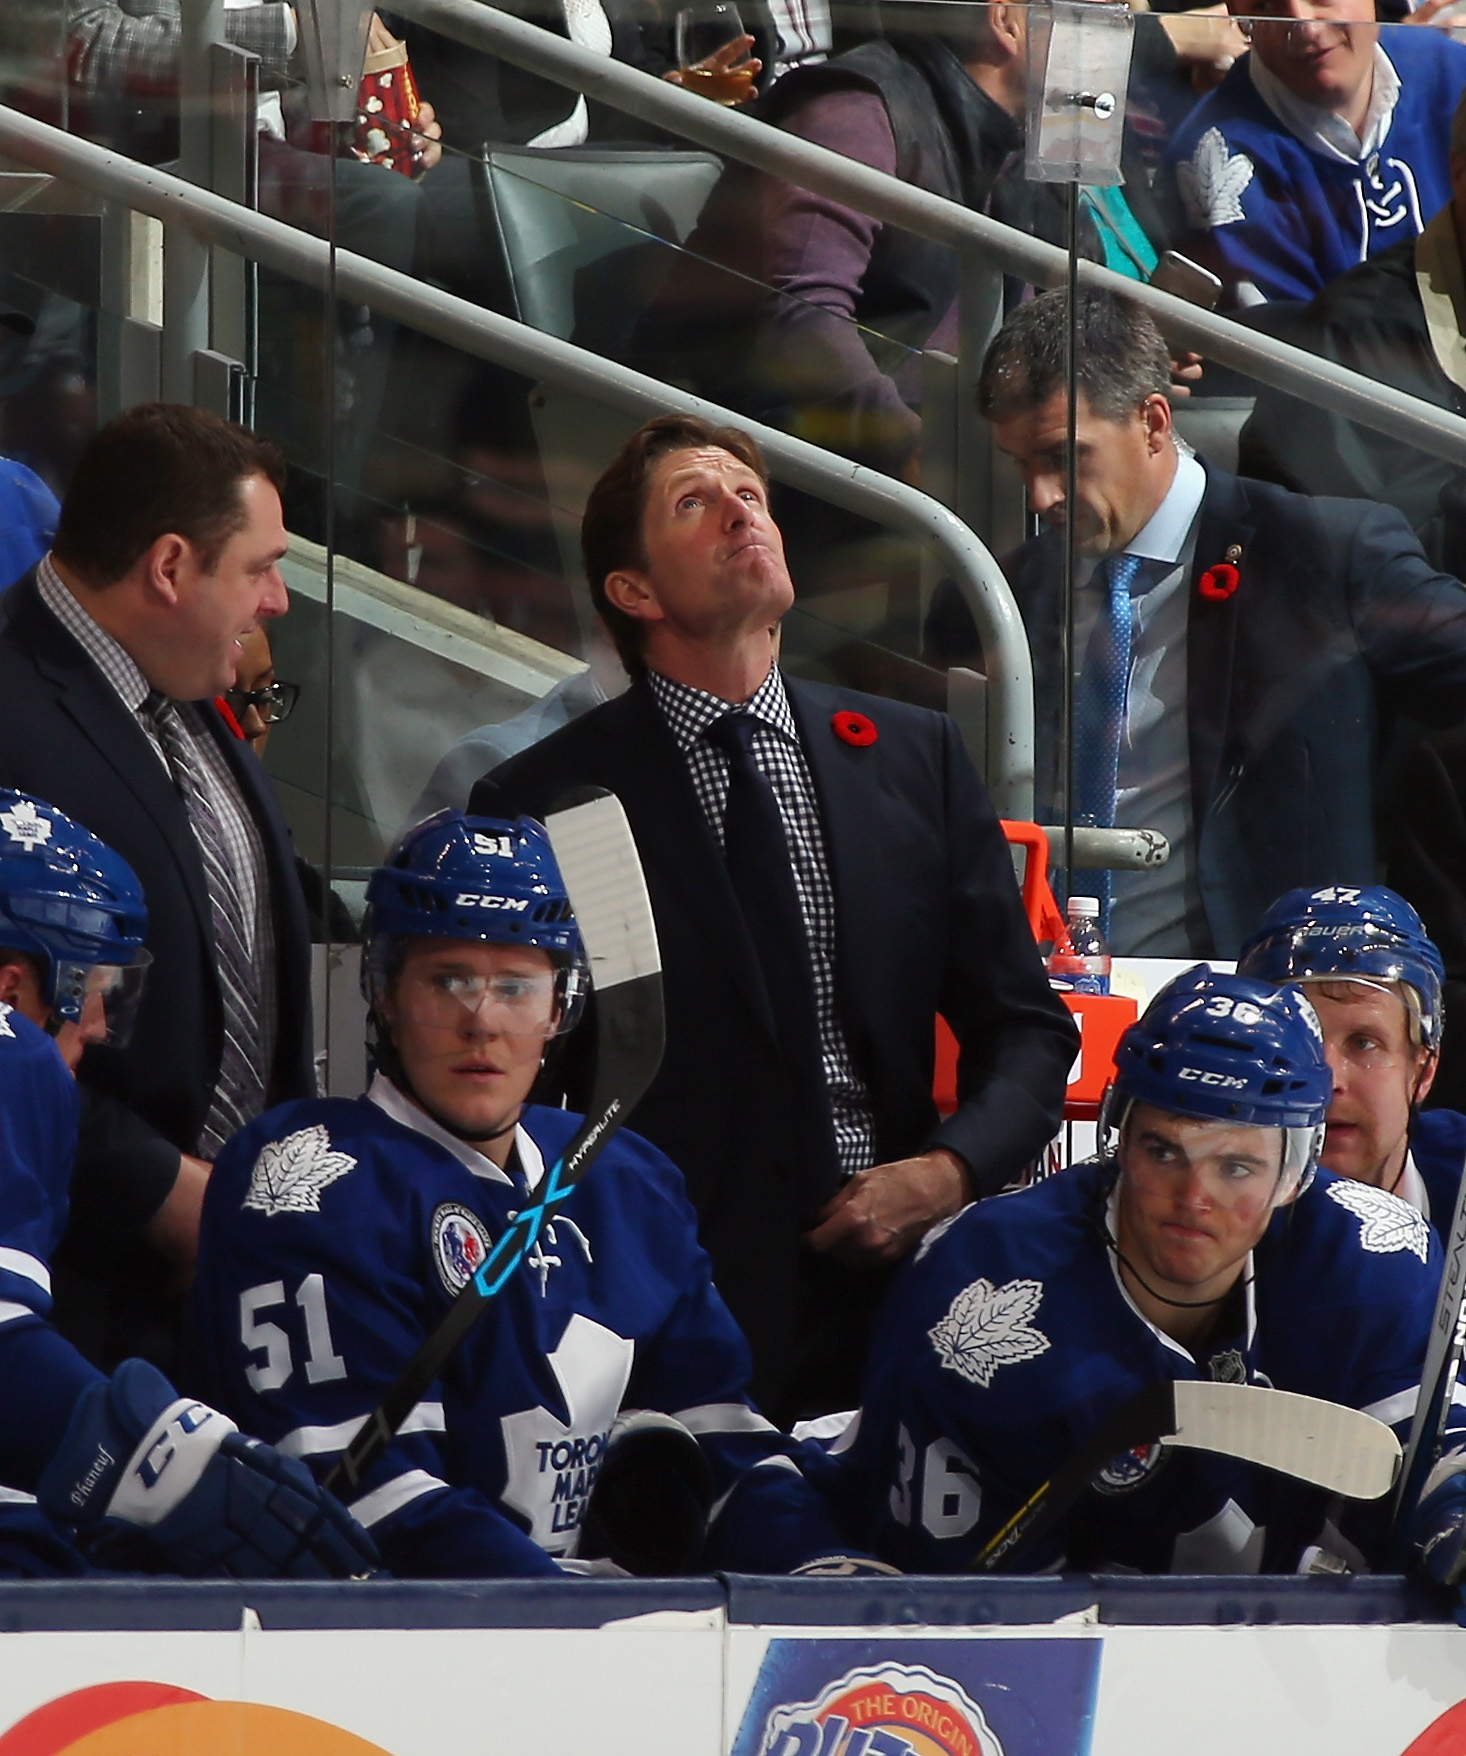 """""""So... that's what playoff hockey looks like... I miss that..."""" - Mike Babcock (or some other Mike)"""